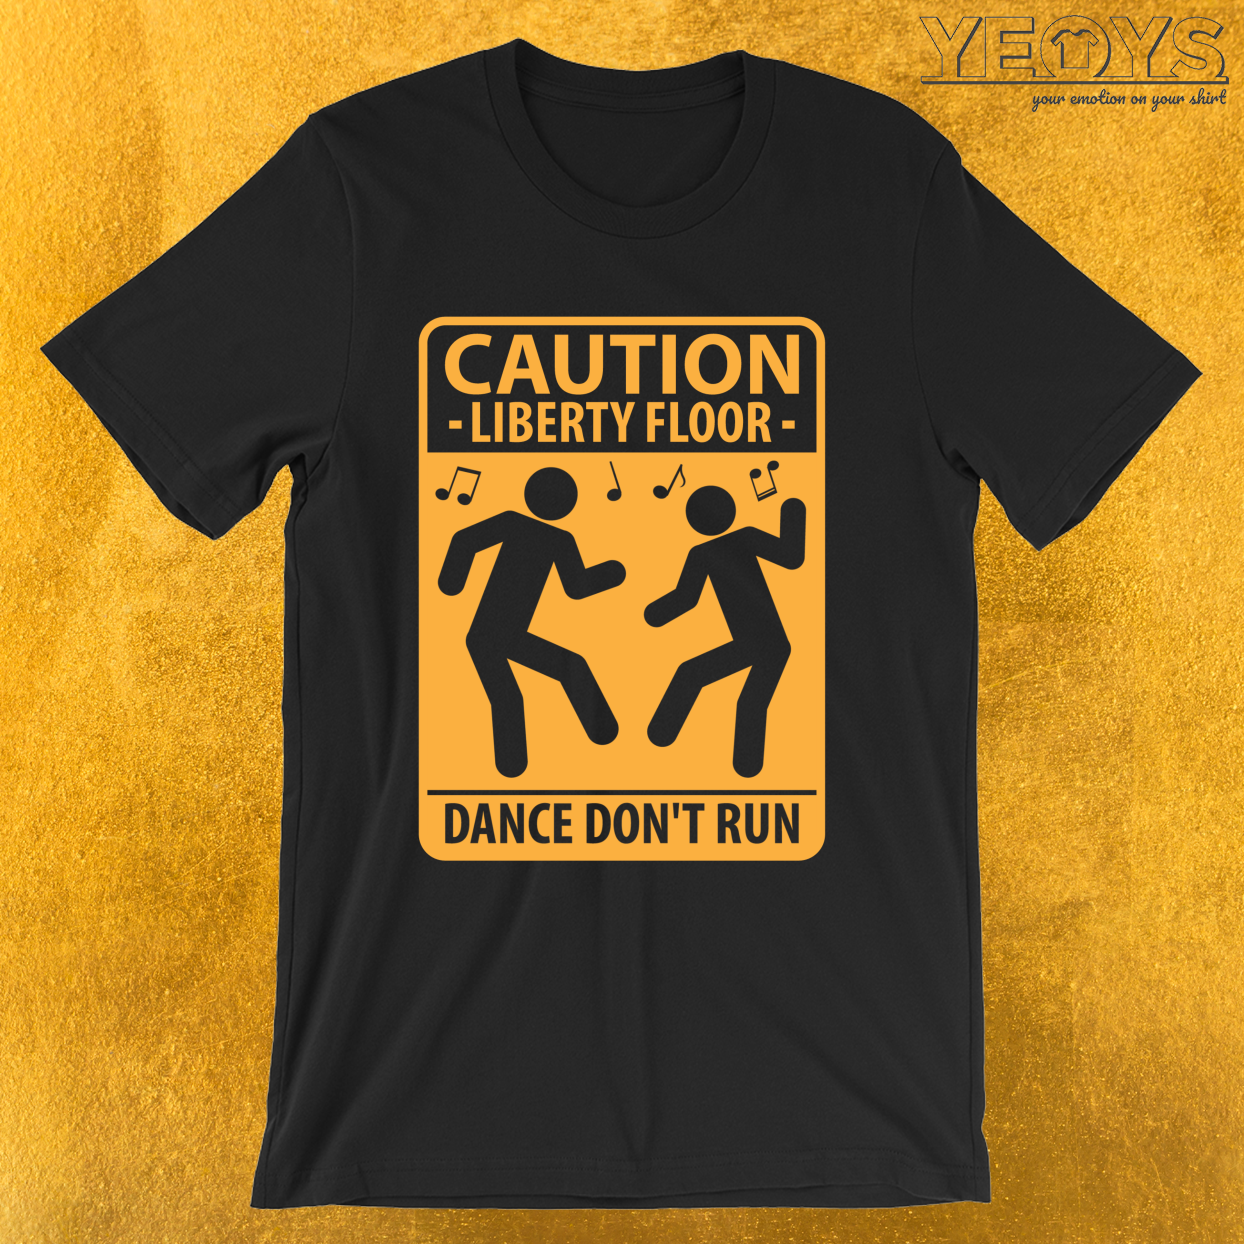 Caution Liberty Floor Dance Don't Run – Funny Dj Quotes Tee